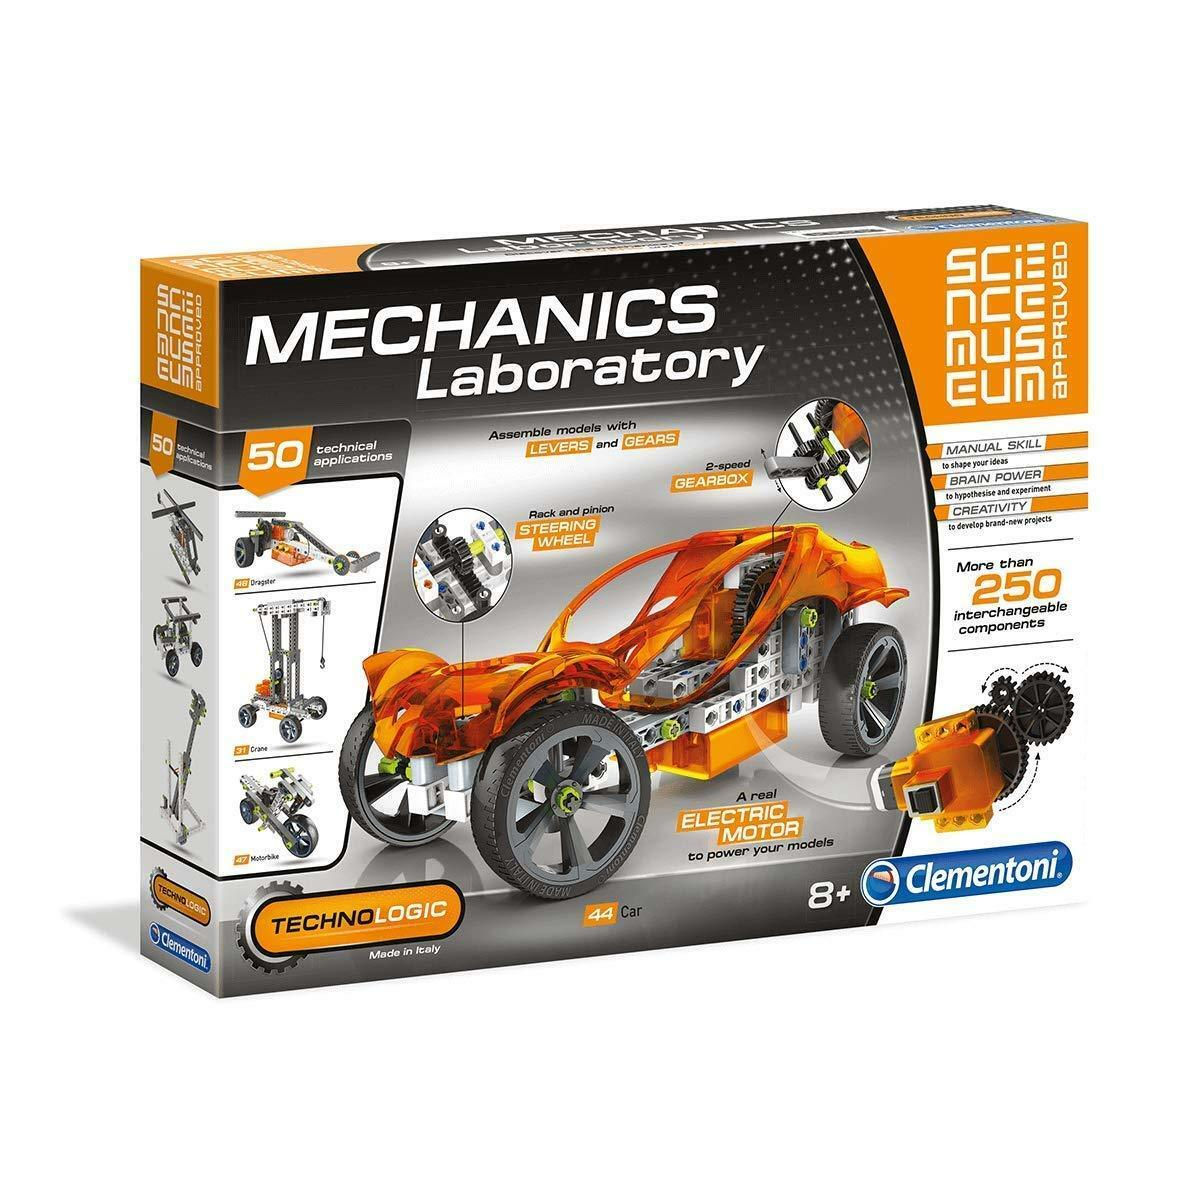 Mechanics Laboratory Lab Science Science Science & Play Toys by Clementoni 426b35